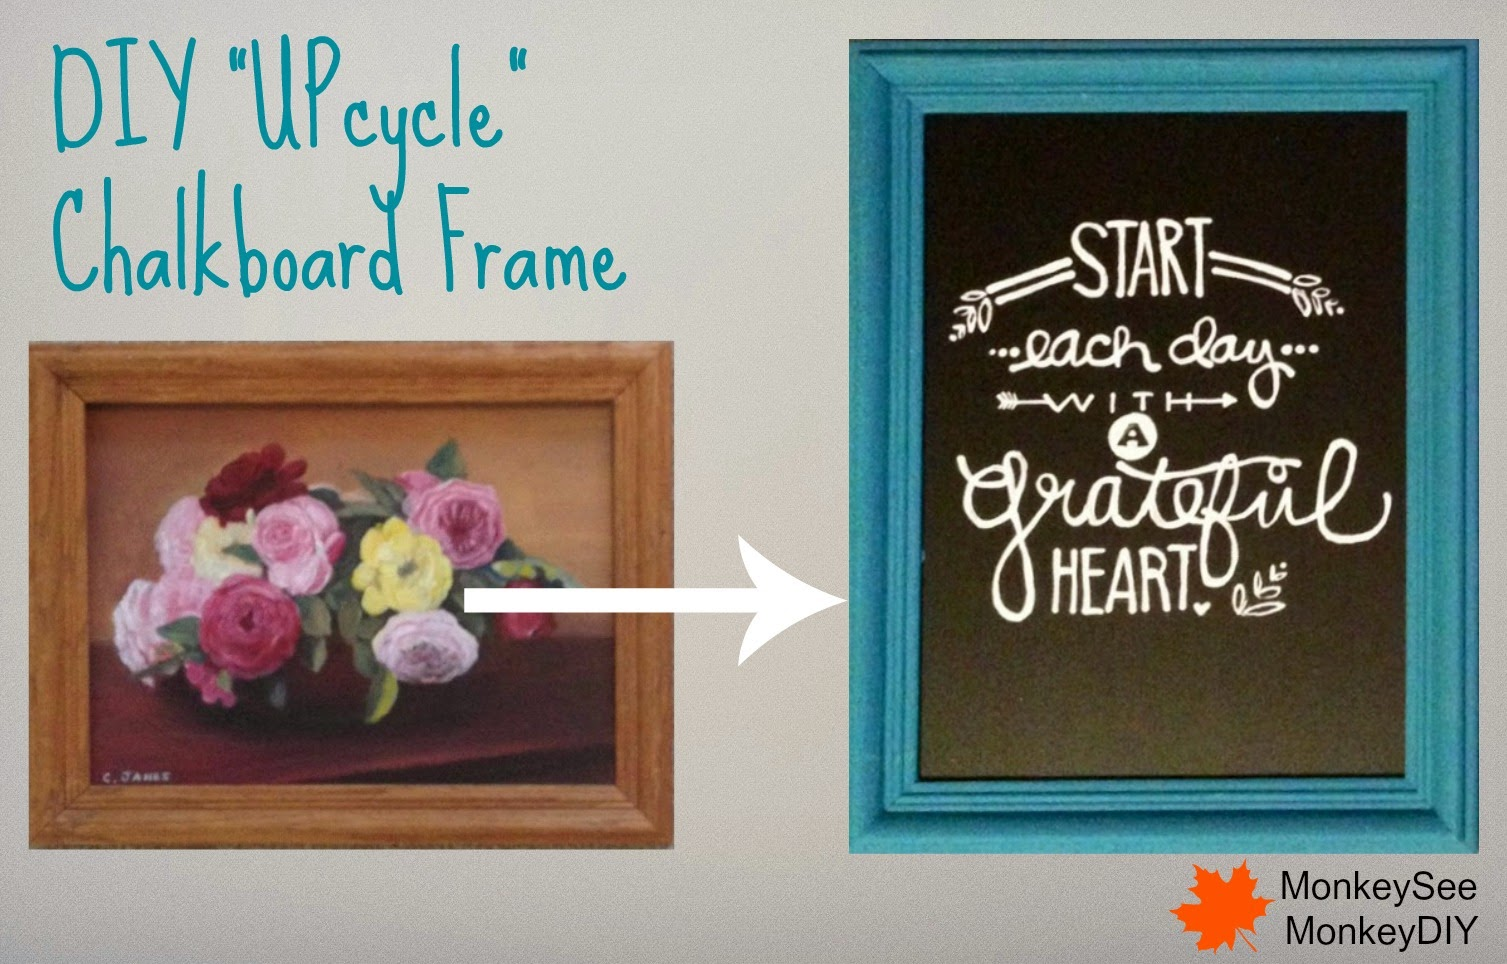 DIY Upcycle Chalkboard Frame Monkey See Monkey DIY